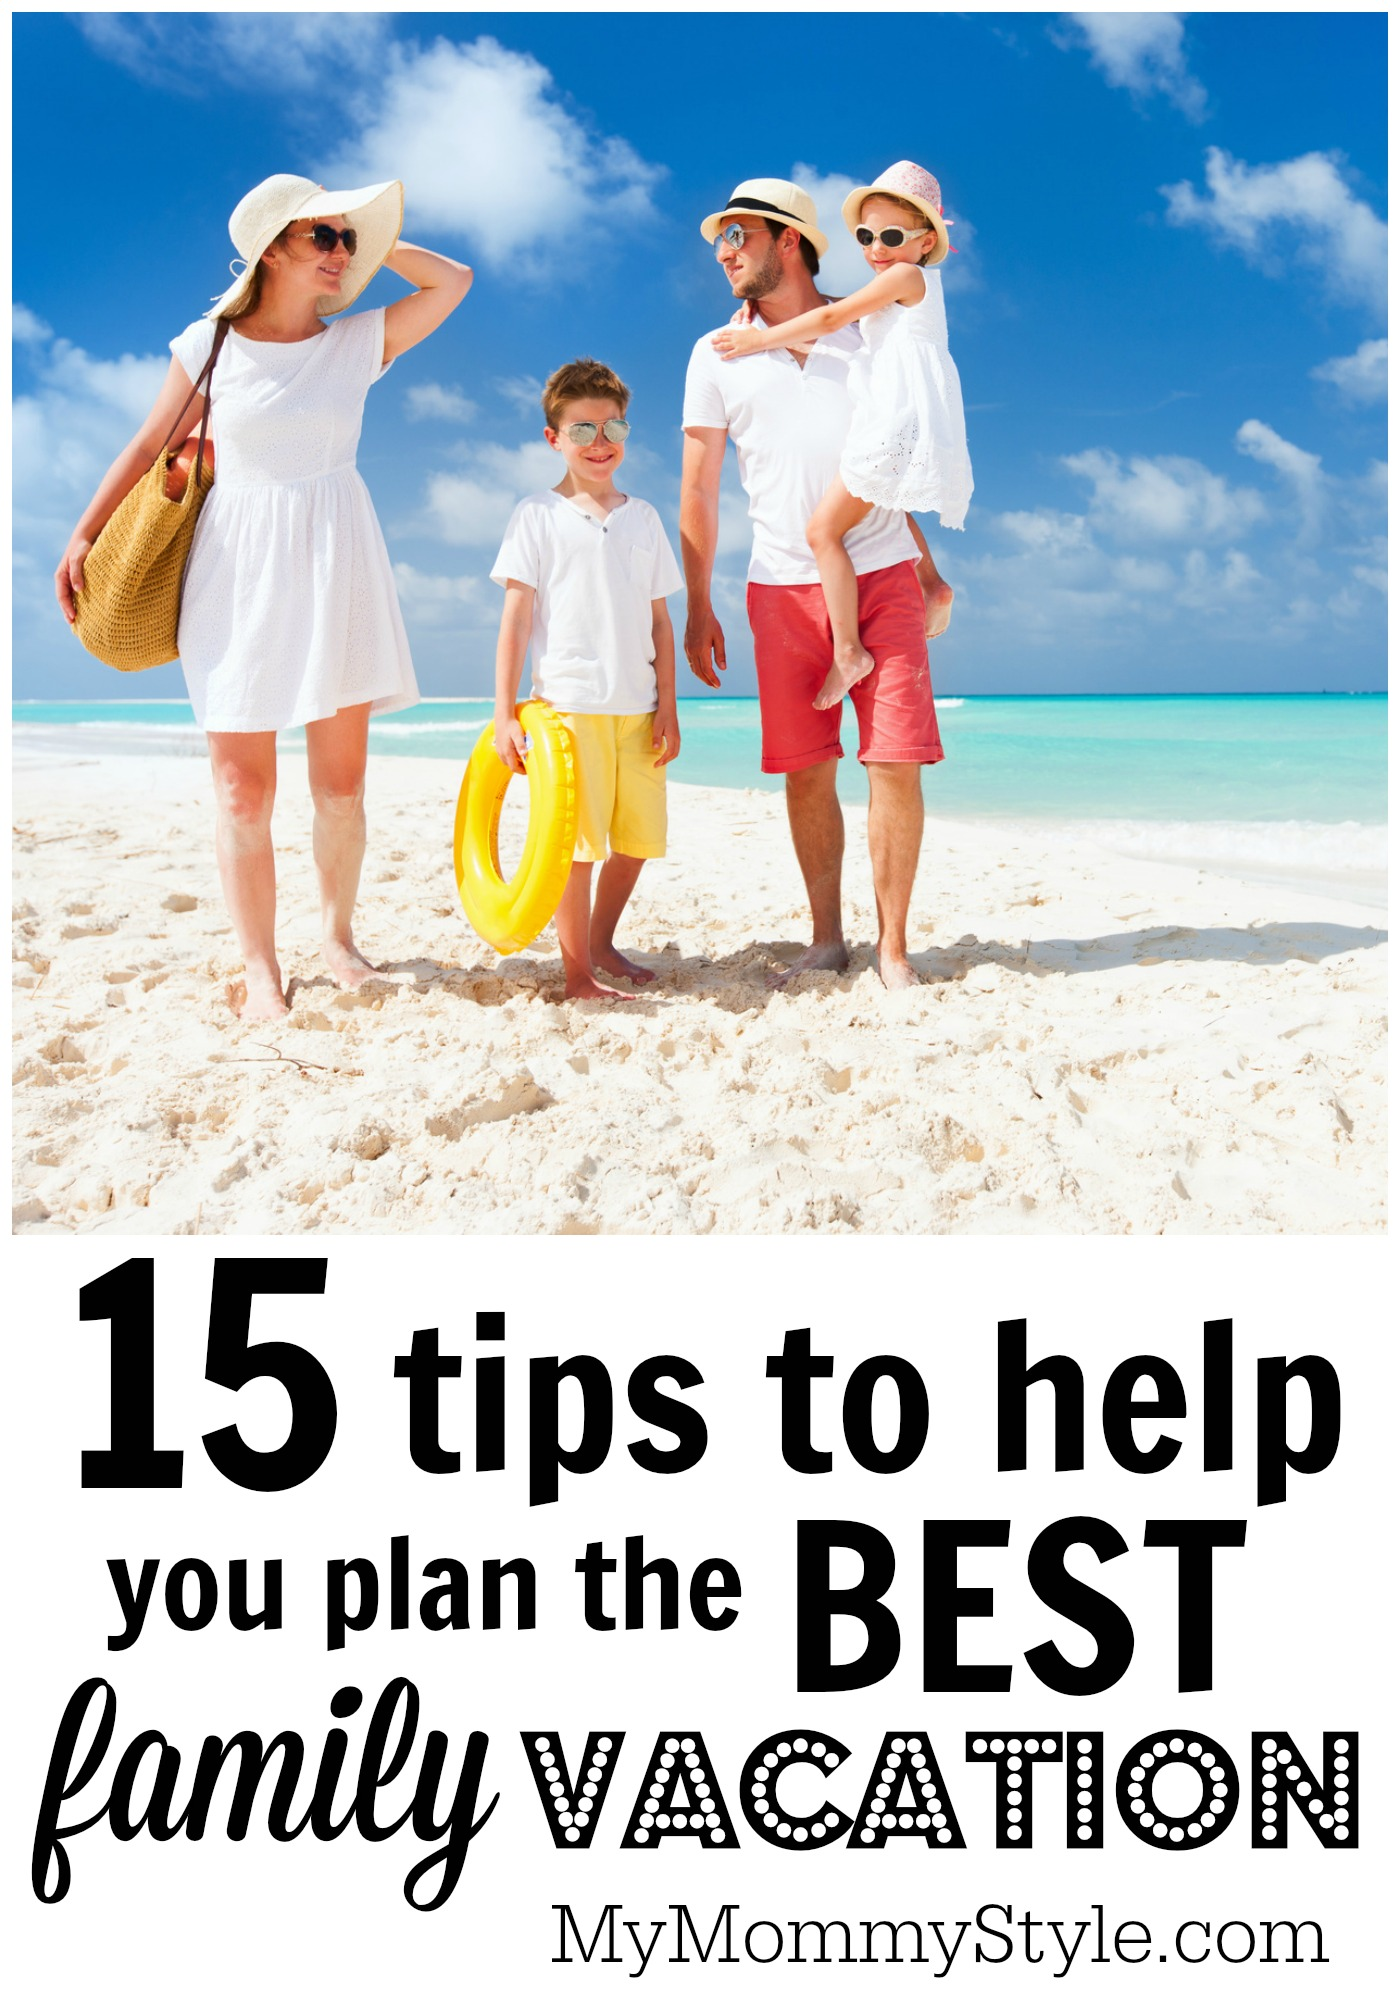 15 tips to help make your family vacation the best one ...